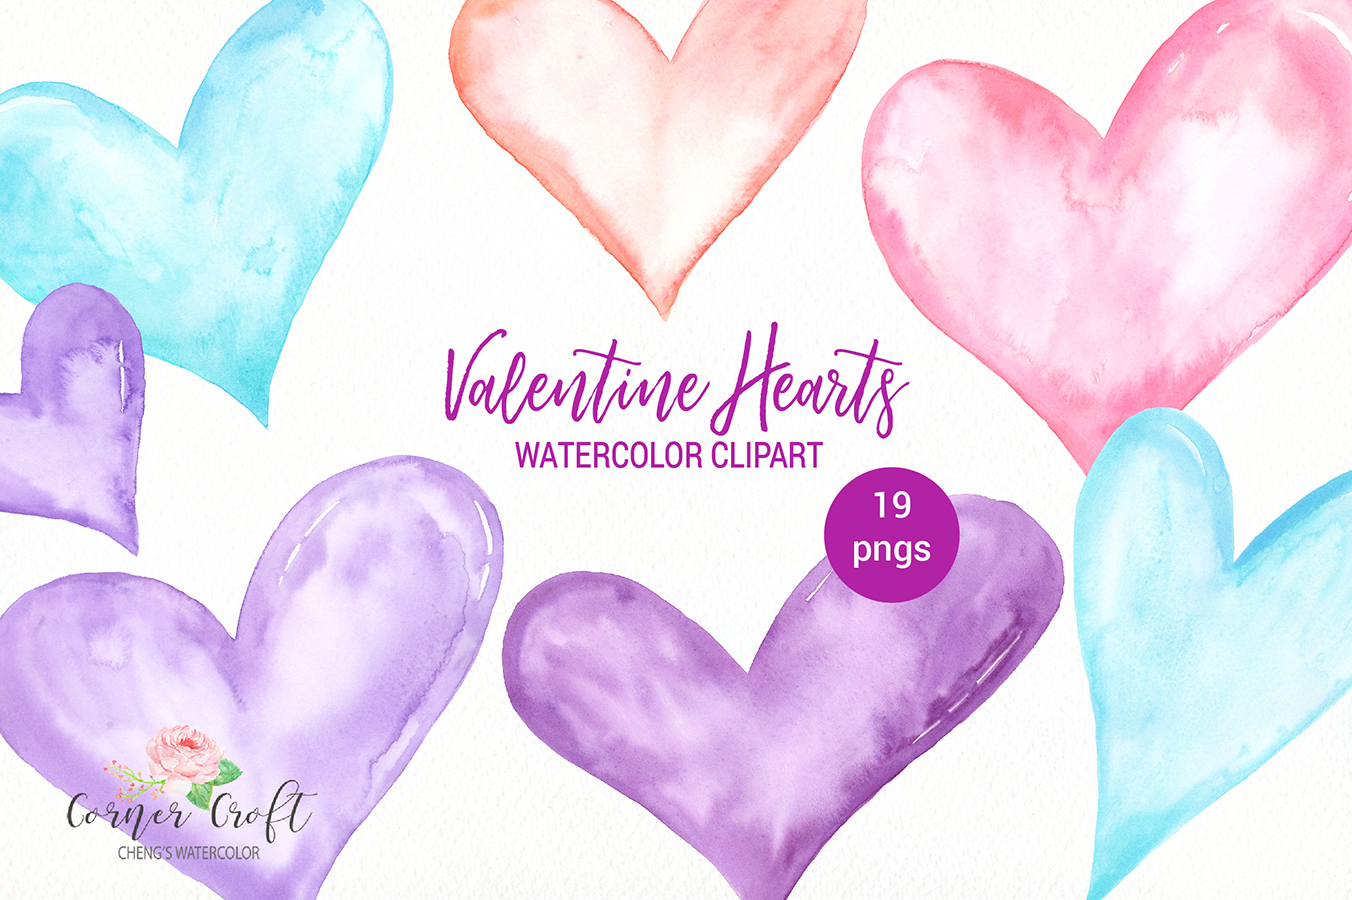 Watercolor Valentine Hearts Clipart example image 1